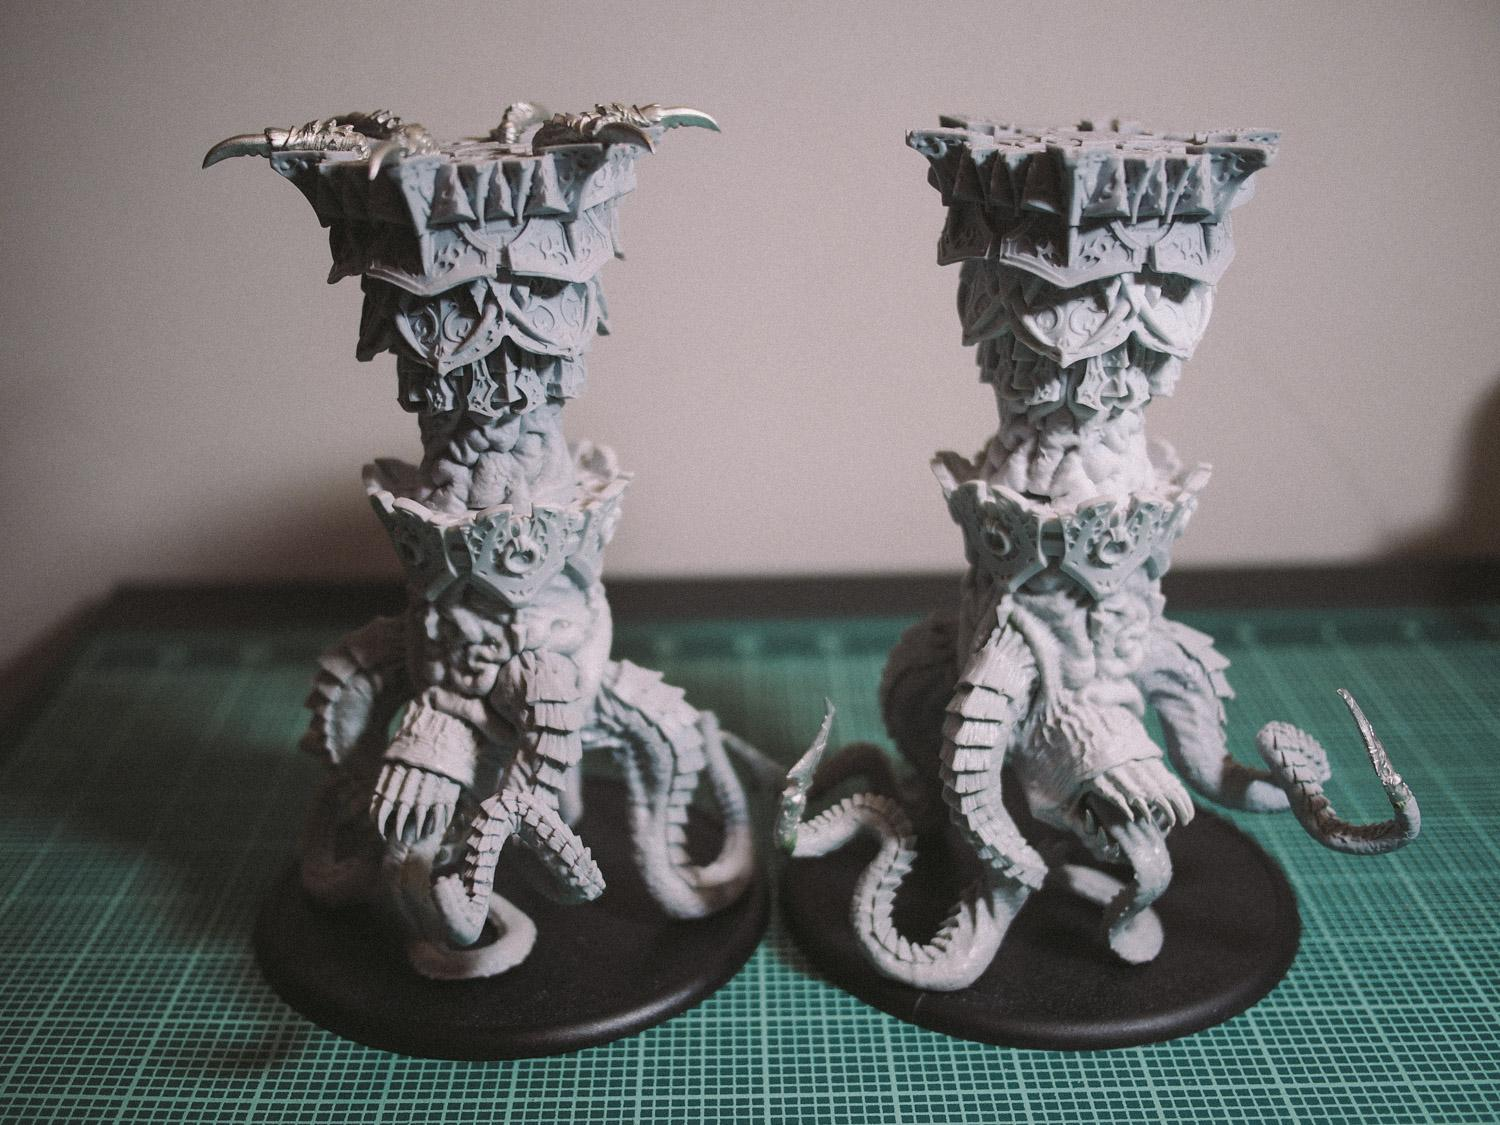 Chaos, Daemons, Slaanesh, Soul Grinder, Throne Of The Everblight, Warmachine